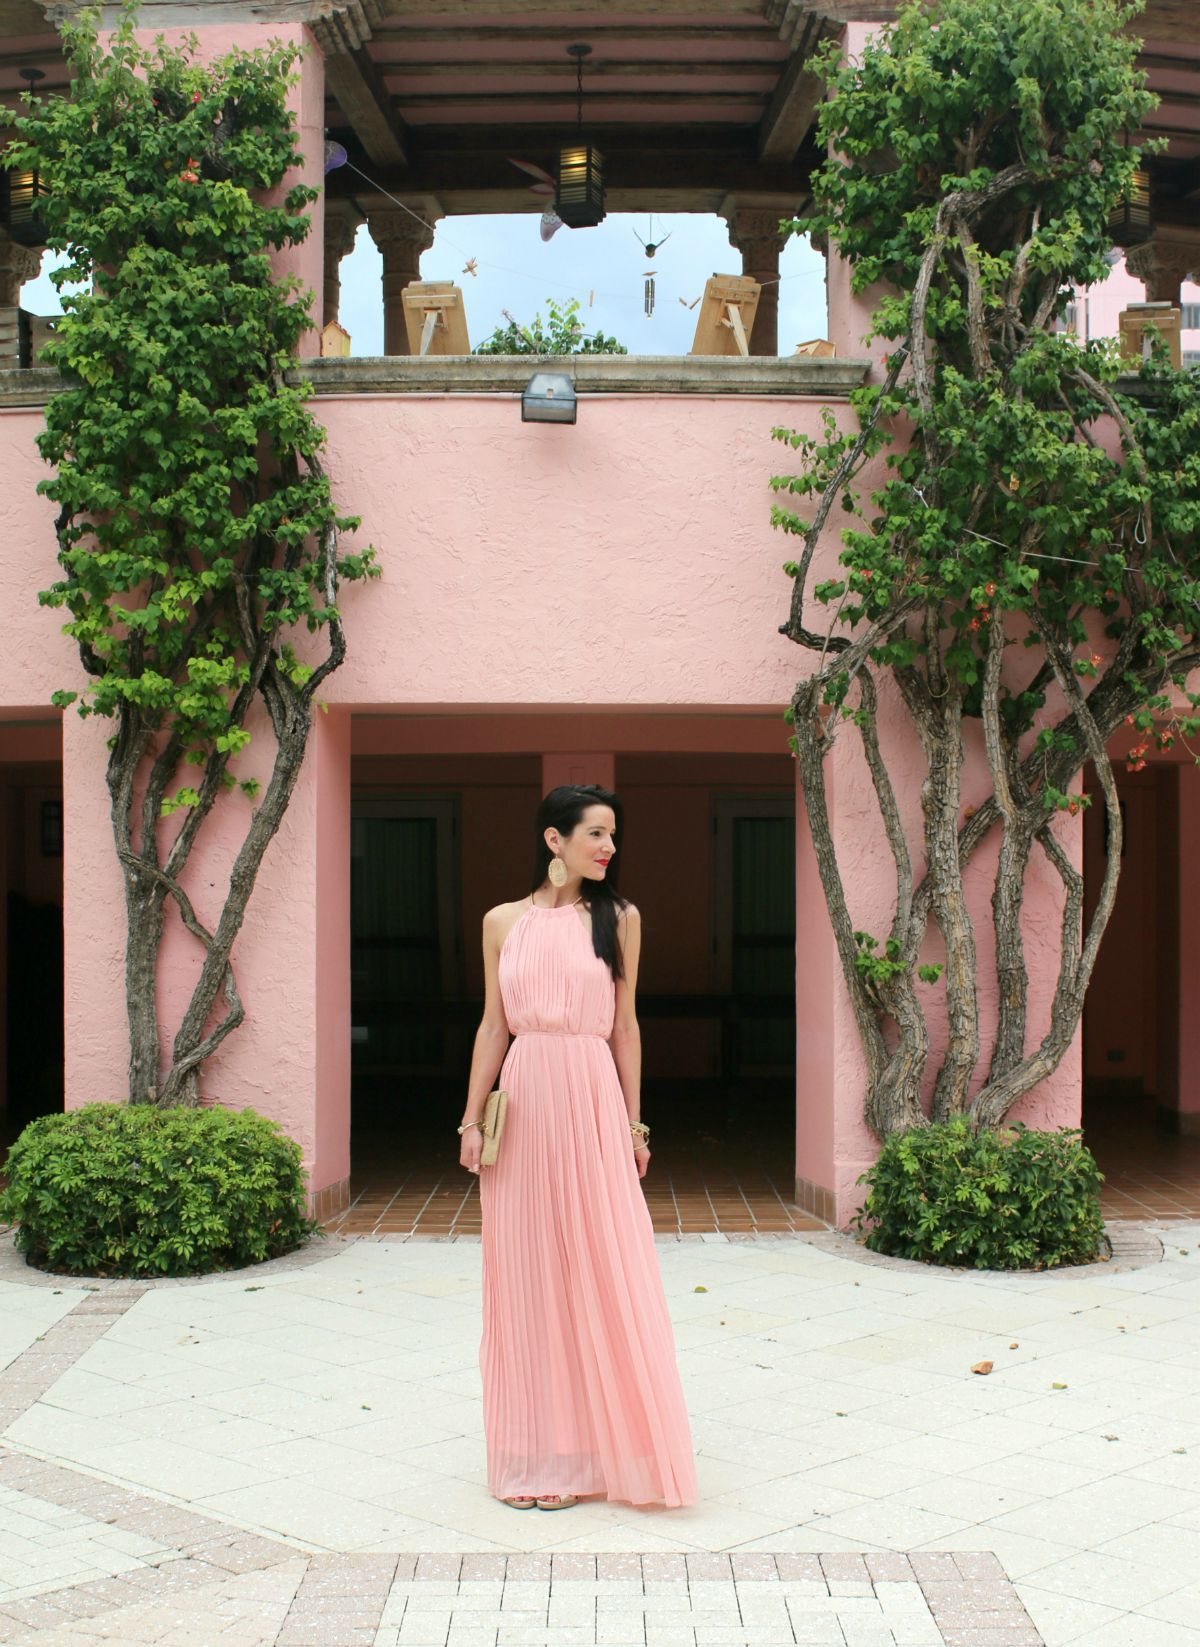 SheInside Pink Pleated Maxi Dress in Boca Raton | Casa campo y Campo